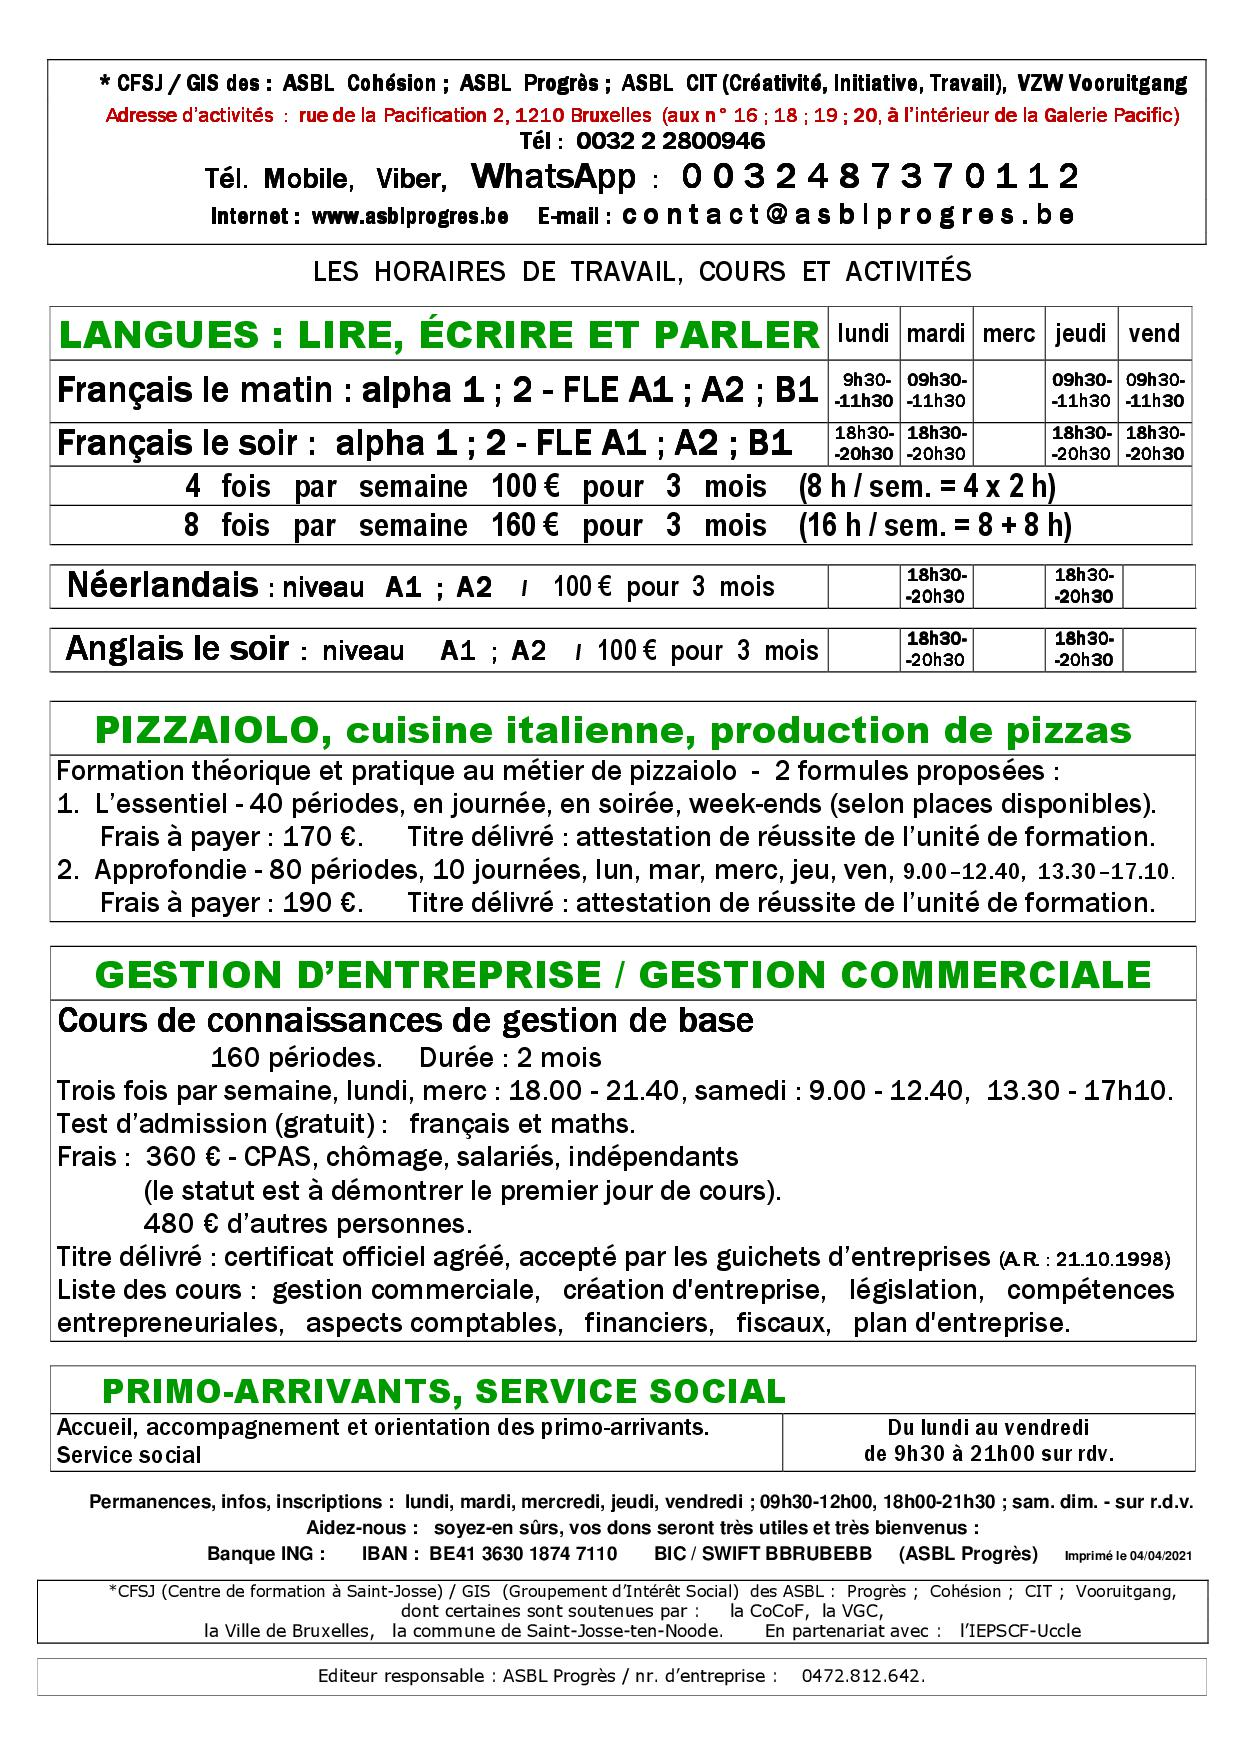 Cours de français langue étrangère, FLE, alphabétisation, néerlandais, anglais, connaissances de gestion de base, débutant, moyen, avancé, A1, A2, B1, à distance, online, par internet, à domicile, en classe, présentiel, pendant les congés scolaires, grand vacances. Formation, courte, accélérée, intensive, soir, matin, en journée, week-end, samedi, dimanche, stage, atelier, pour le métier, pour devenir pizzaiolo, pour trouver un travail, travailler comme pizzaiolo, ouvrir une pizzeria, travailler dans une pizzeria, cuisine italienne, produire des pizzas, fabriquer des pizzas à livrer, livraison en Belgique, à Bruxelles, à la place Saint-Josse, métro Madou. Four à pizza électrique, four à pizza au bois. French language course, school, FlE, Dutch, English, beginner, intermediate, advanced, A1, A2, B1, online, internet, at home, in class, face-to-face, during school holidays, long vacation. Training, short, accelerated, intensive, evening, morning, daytime, weekend, Saturday, Sunday, internship, workshop, for the profession, to become a pizzaiolo, to find a job, to work as a pizzaiolo, to open a pizzeria, to work in a pizzeria, Italian cuisine, produce pizzas, make pizzas to be delivered, delivery in Belgium, in Brussels, in Saint-Josse, metro Madou. Electric pizza oven, wood-fired pizza oven.